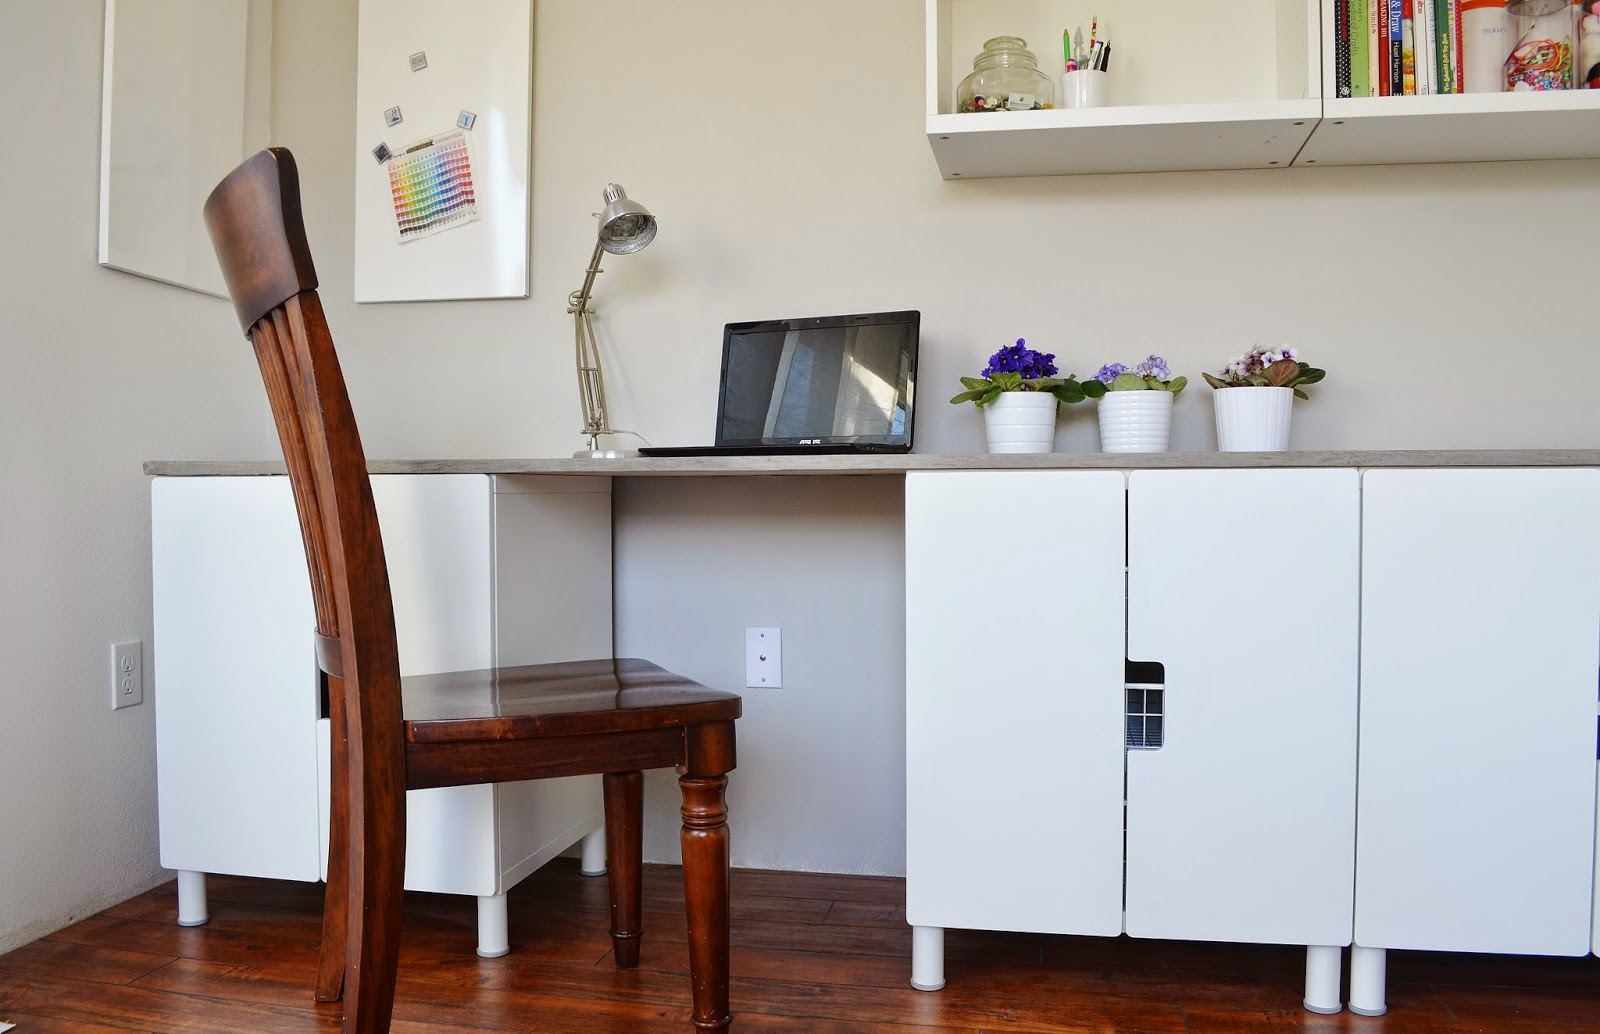 Ikea Hacks Stuva Snugglebug University Ikea Stuva Desk Hack